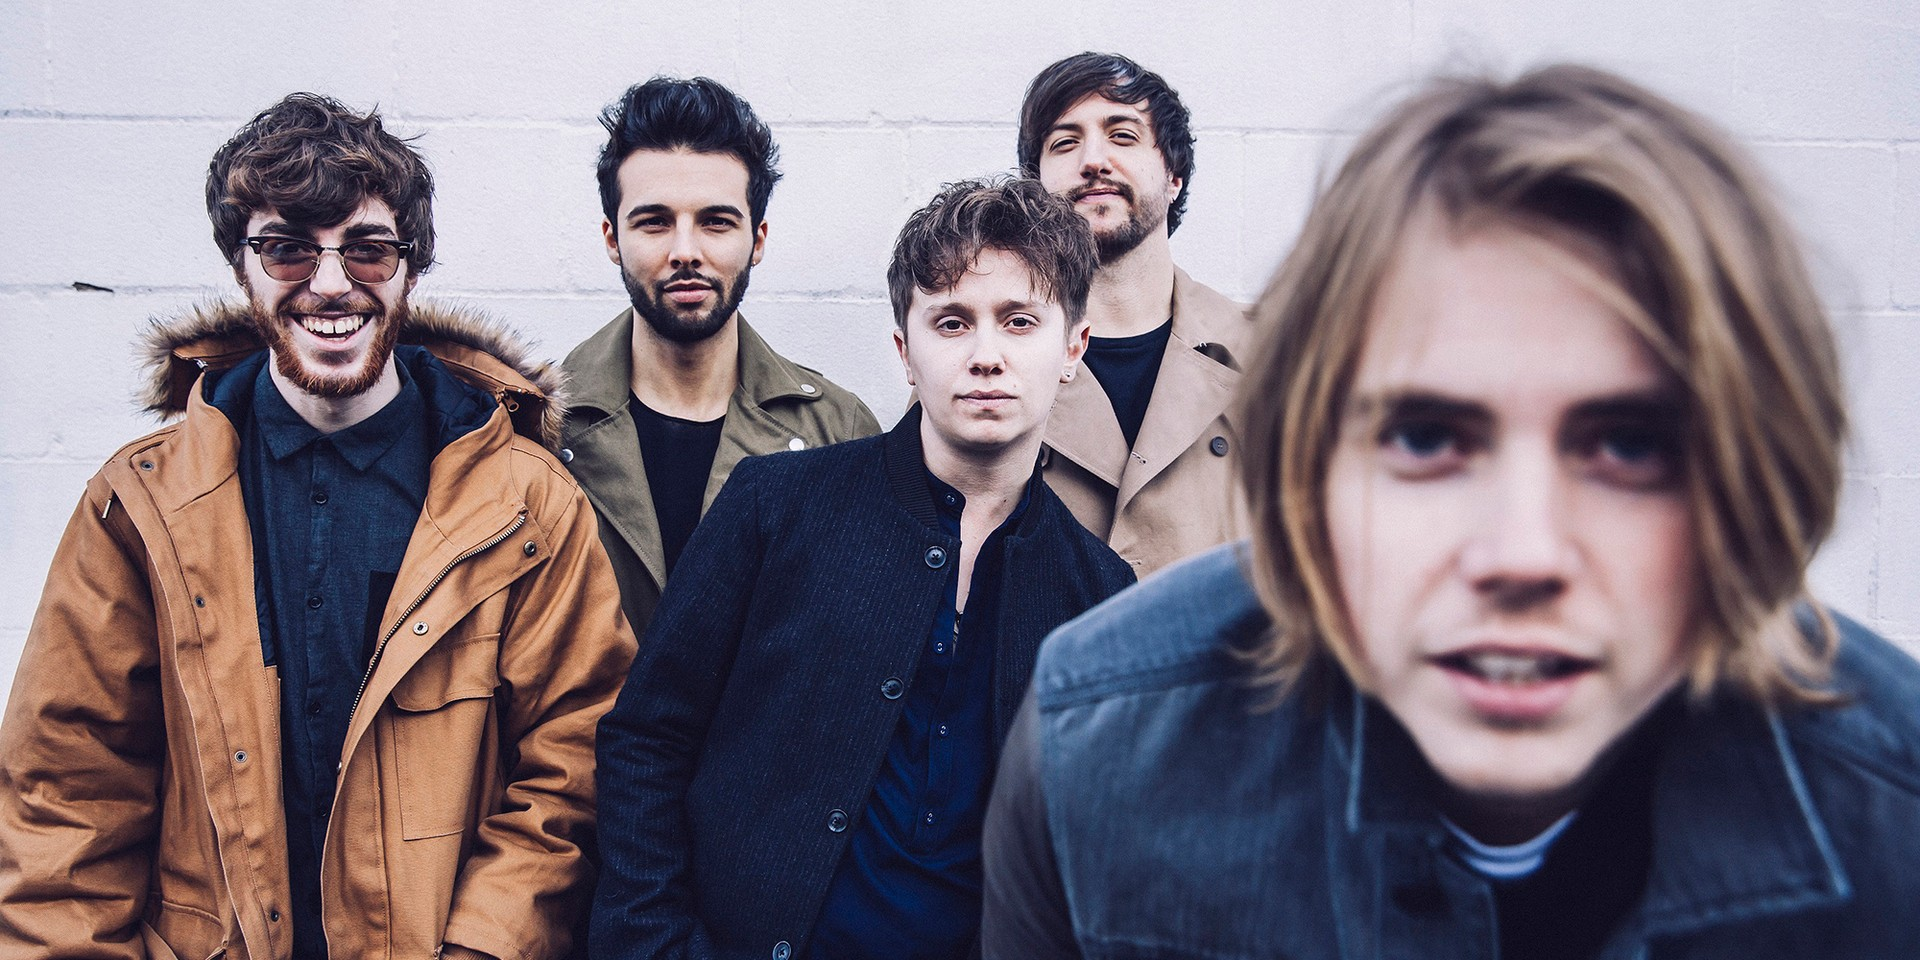 Emerging alt-rock band Nothing But Thieves to perform in Singapore